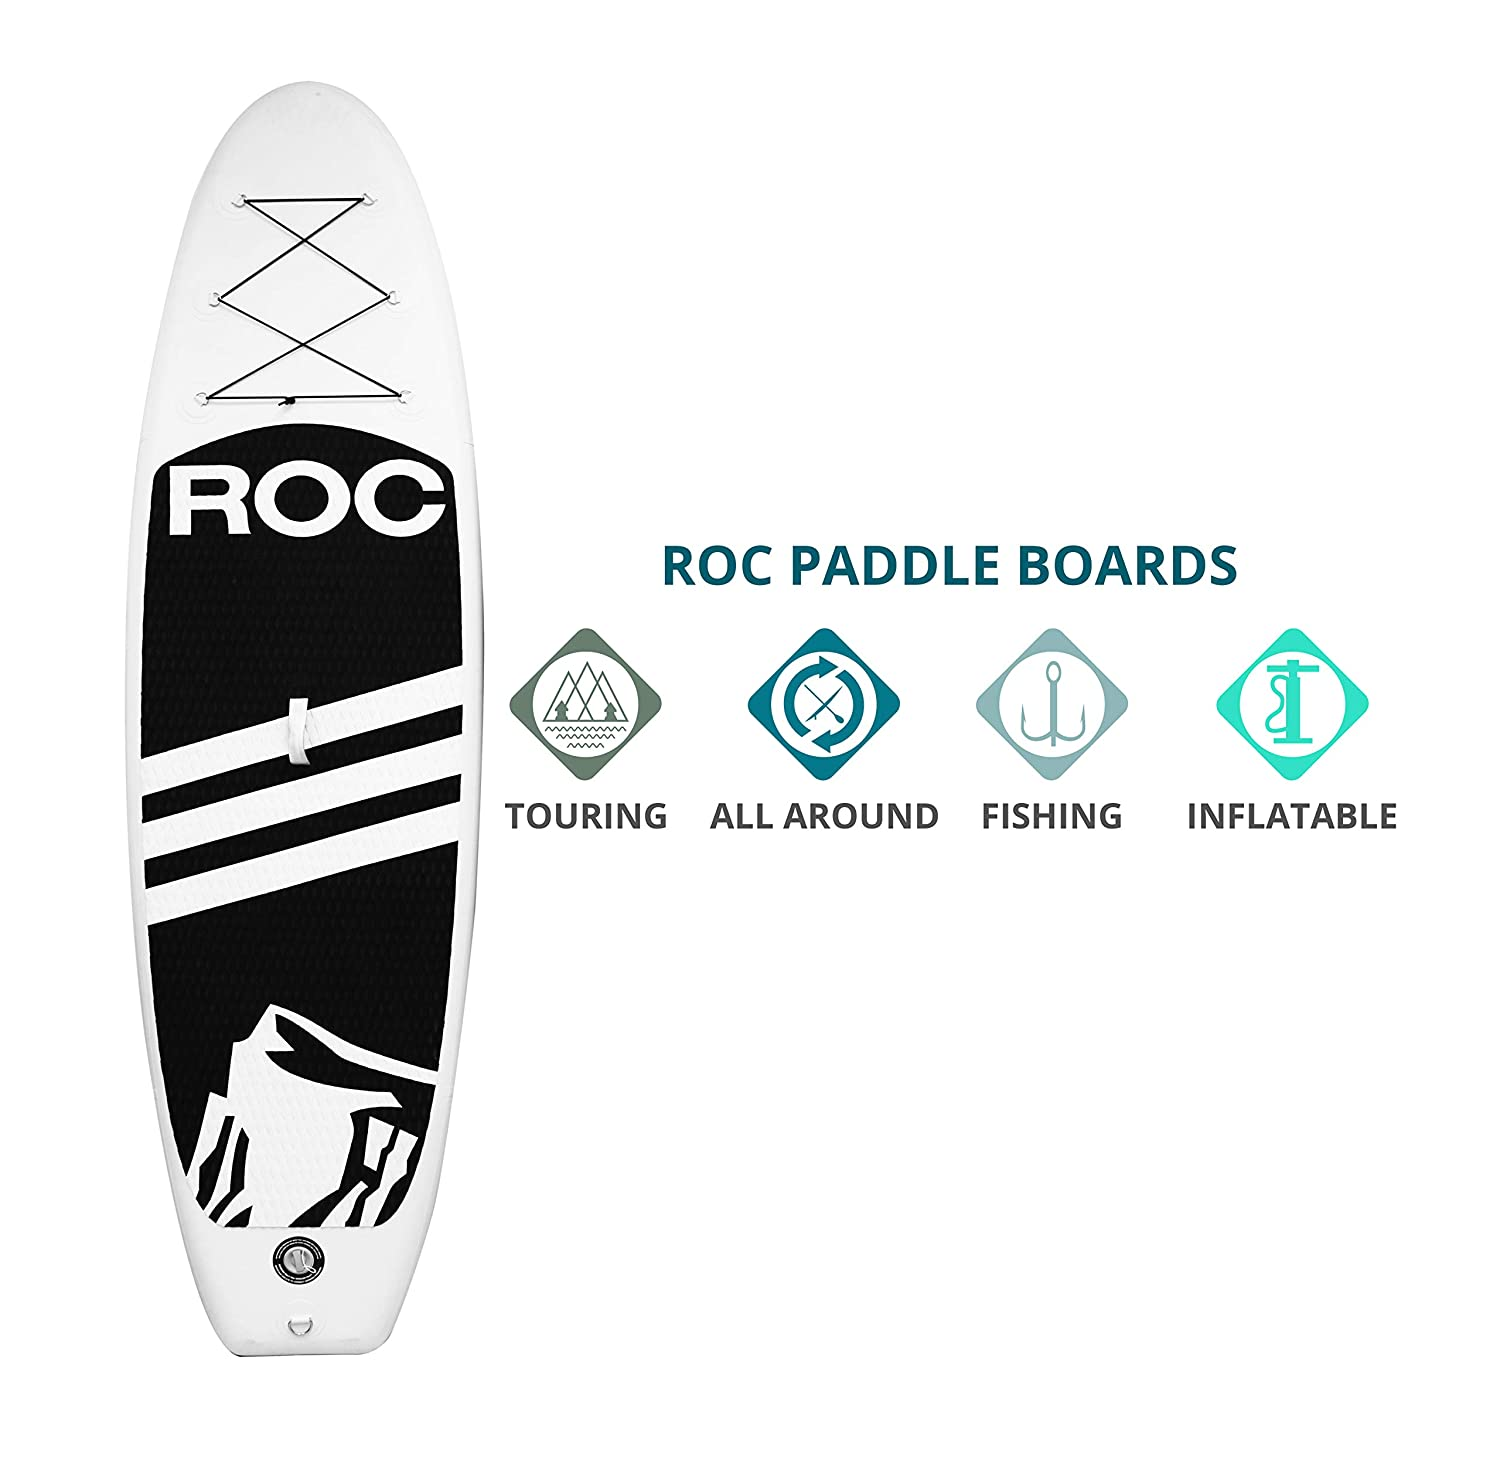 Roc Inflatable Stand Up Paddle Boards W Free Premium SUP Accessories Backpack Non-Slip Deck Bonus Waterproof Bag, Leash, Paddle and Hand Pump Youth Adult